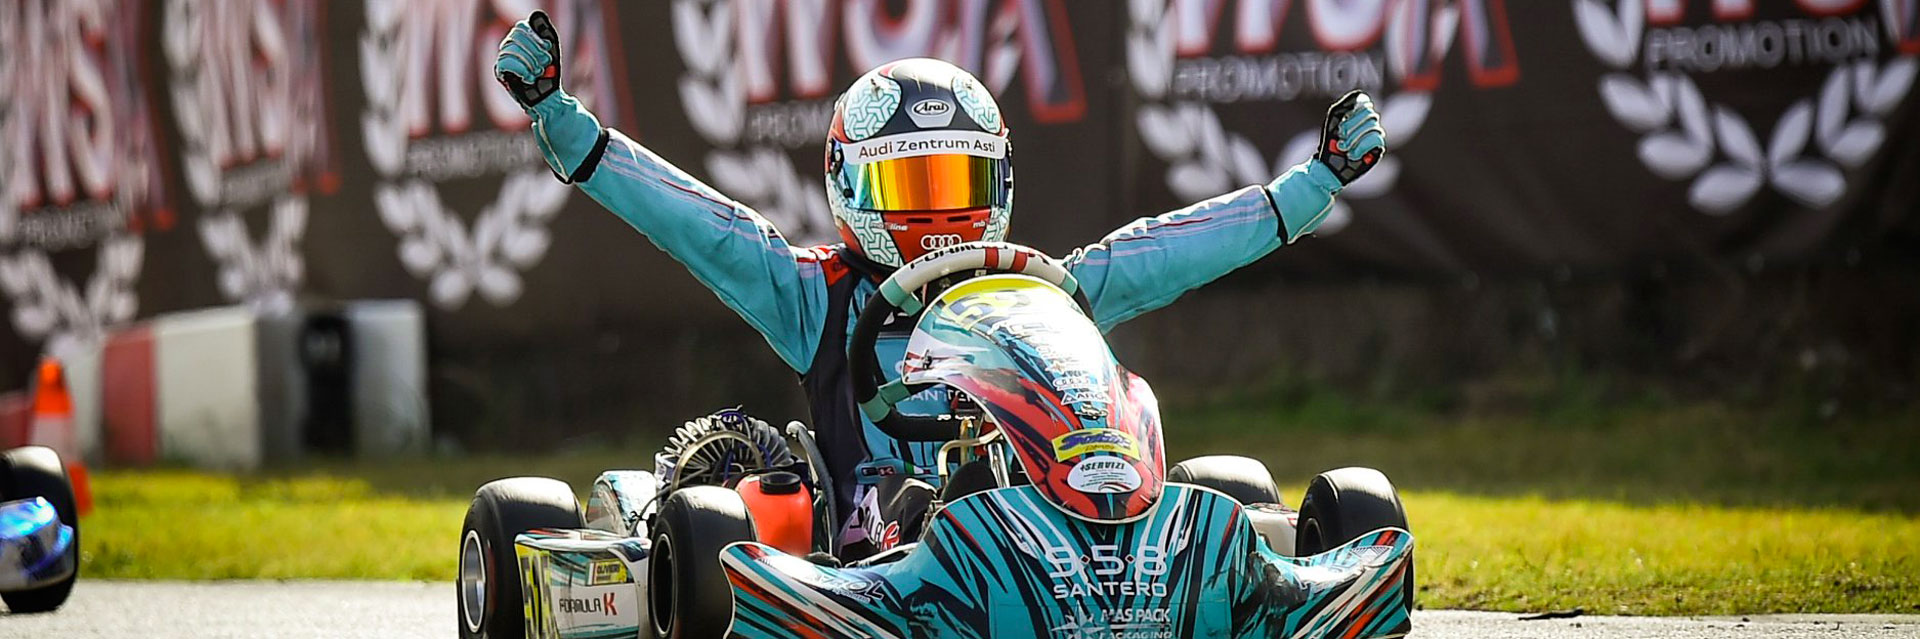 Formula K triumphs with Olivieri in round 1 of the WSK Open Cup